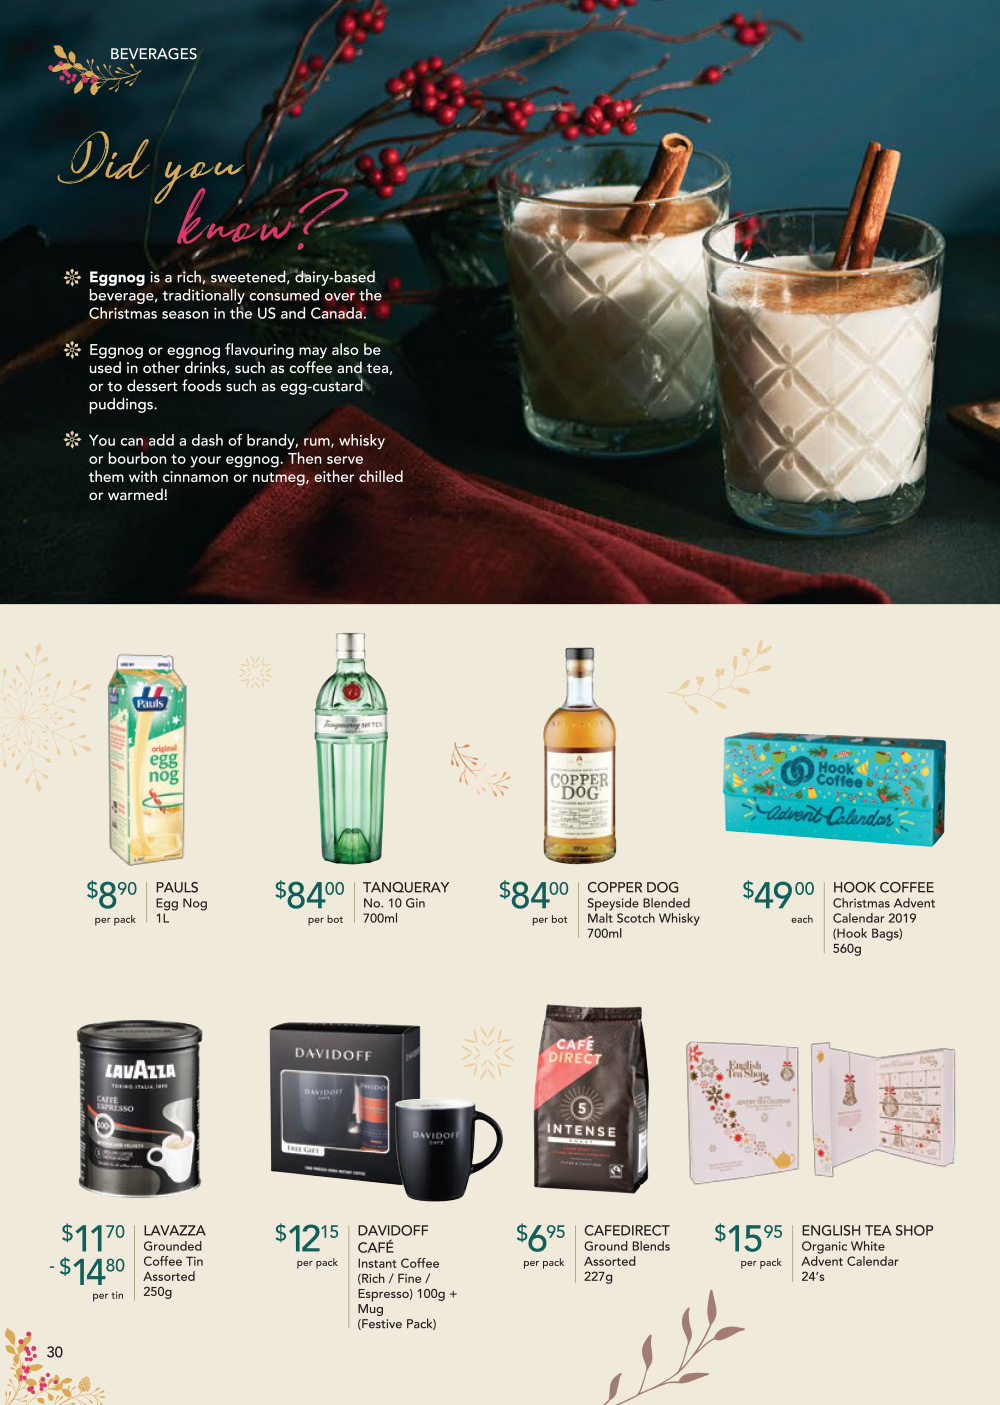 FairPrice Finest Christmas Catalogue 2019 - Beverages